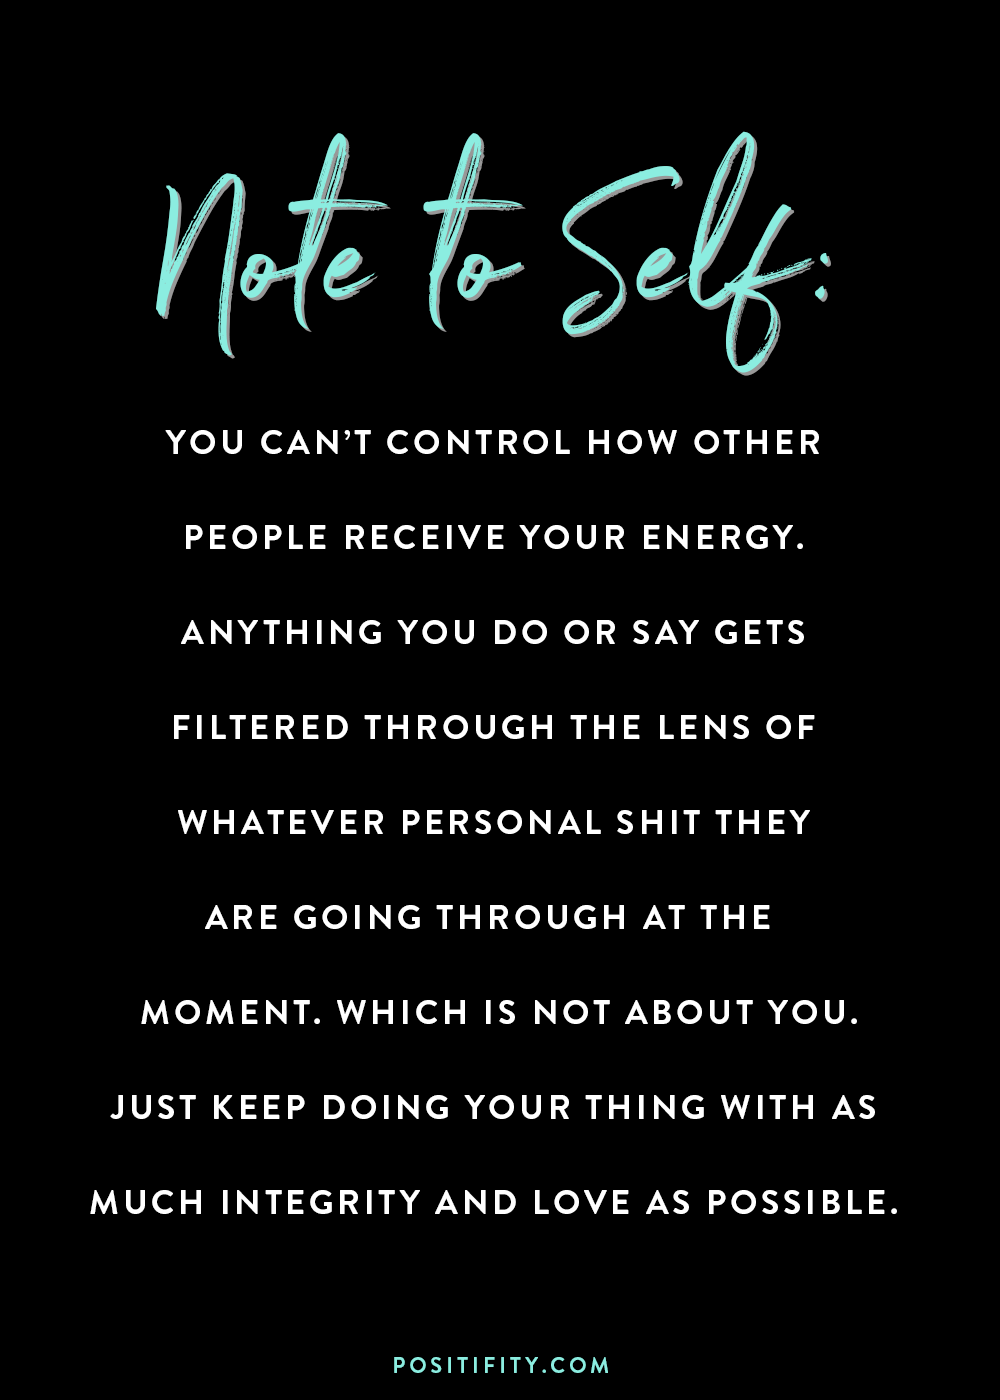 [Image] You cannot control how other people receive YOUR energy.